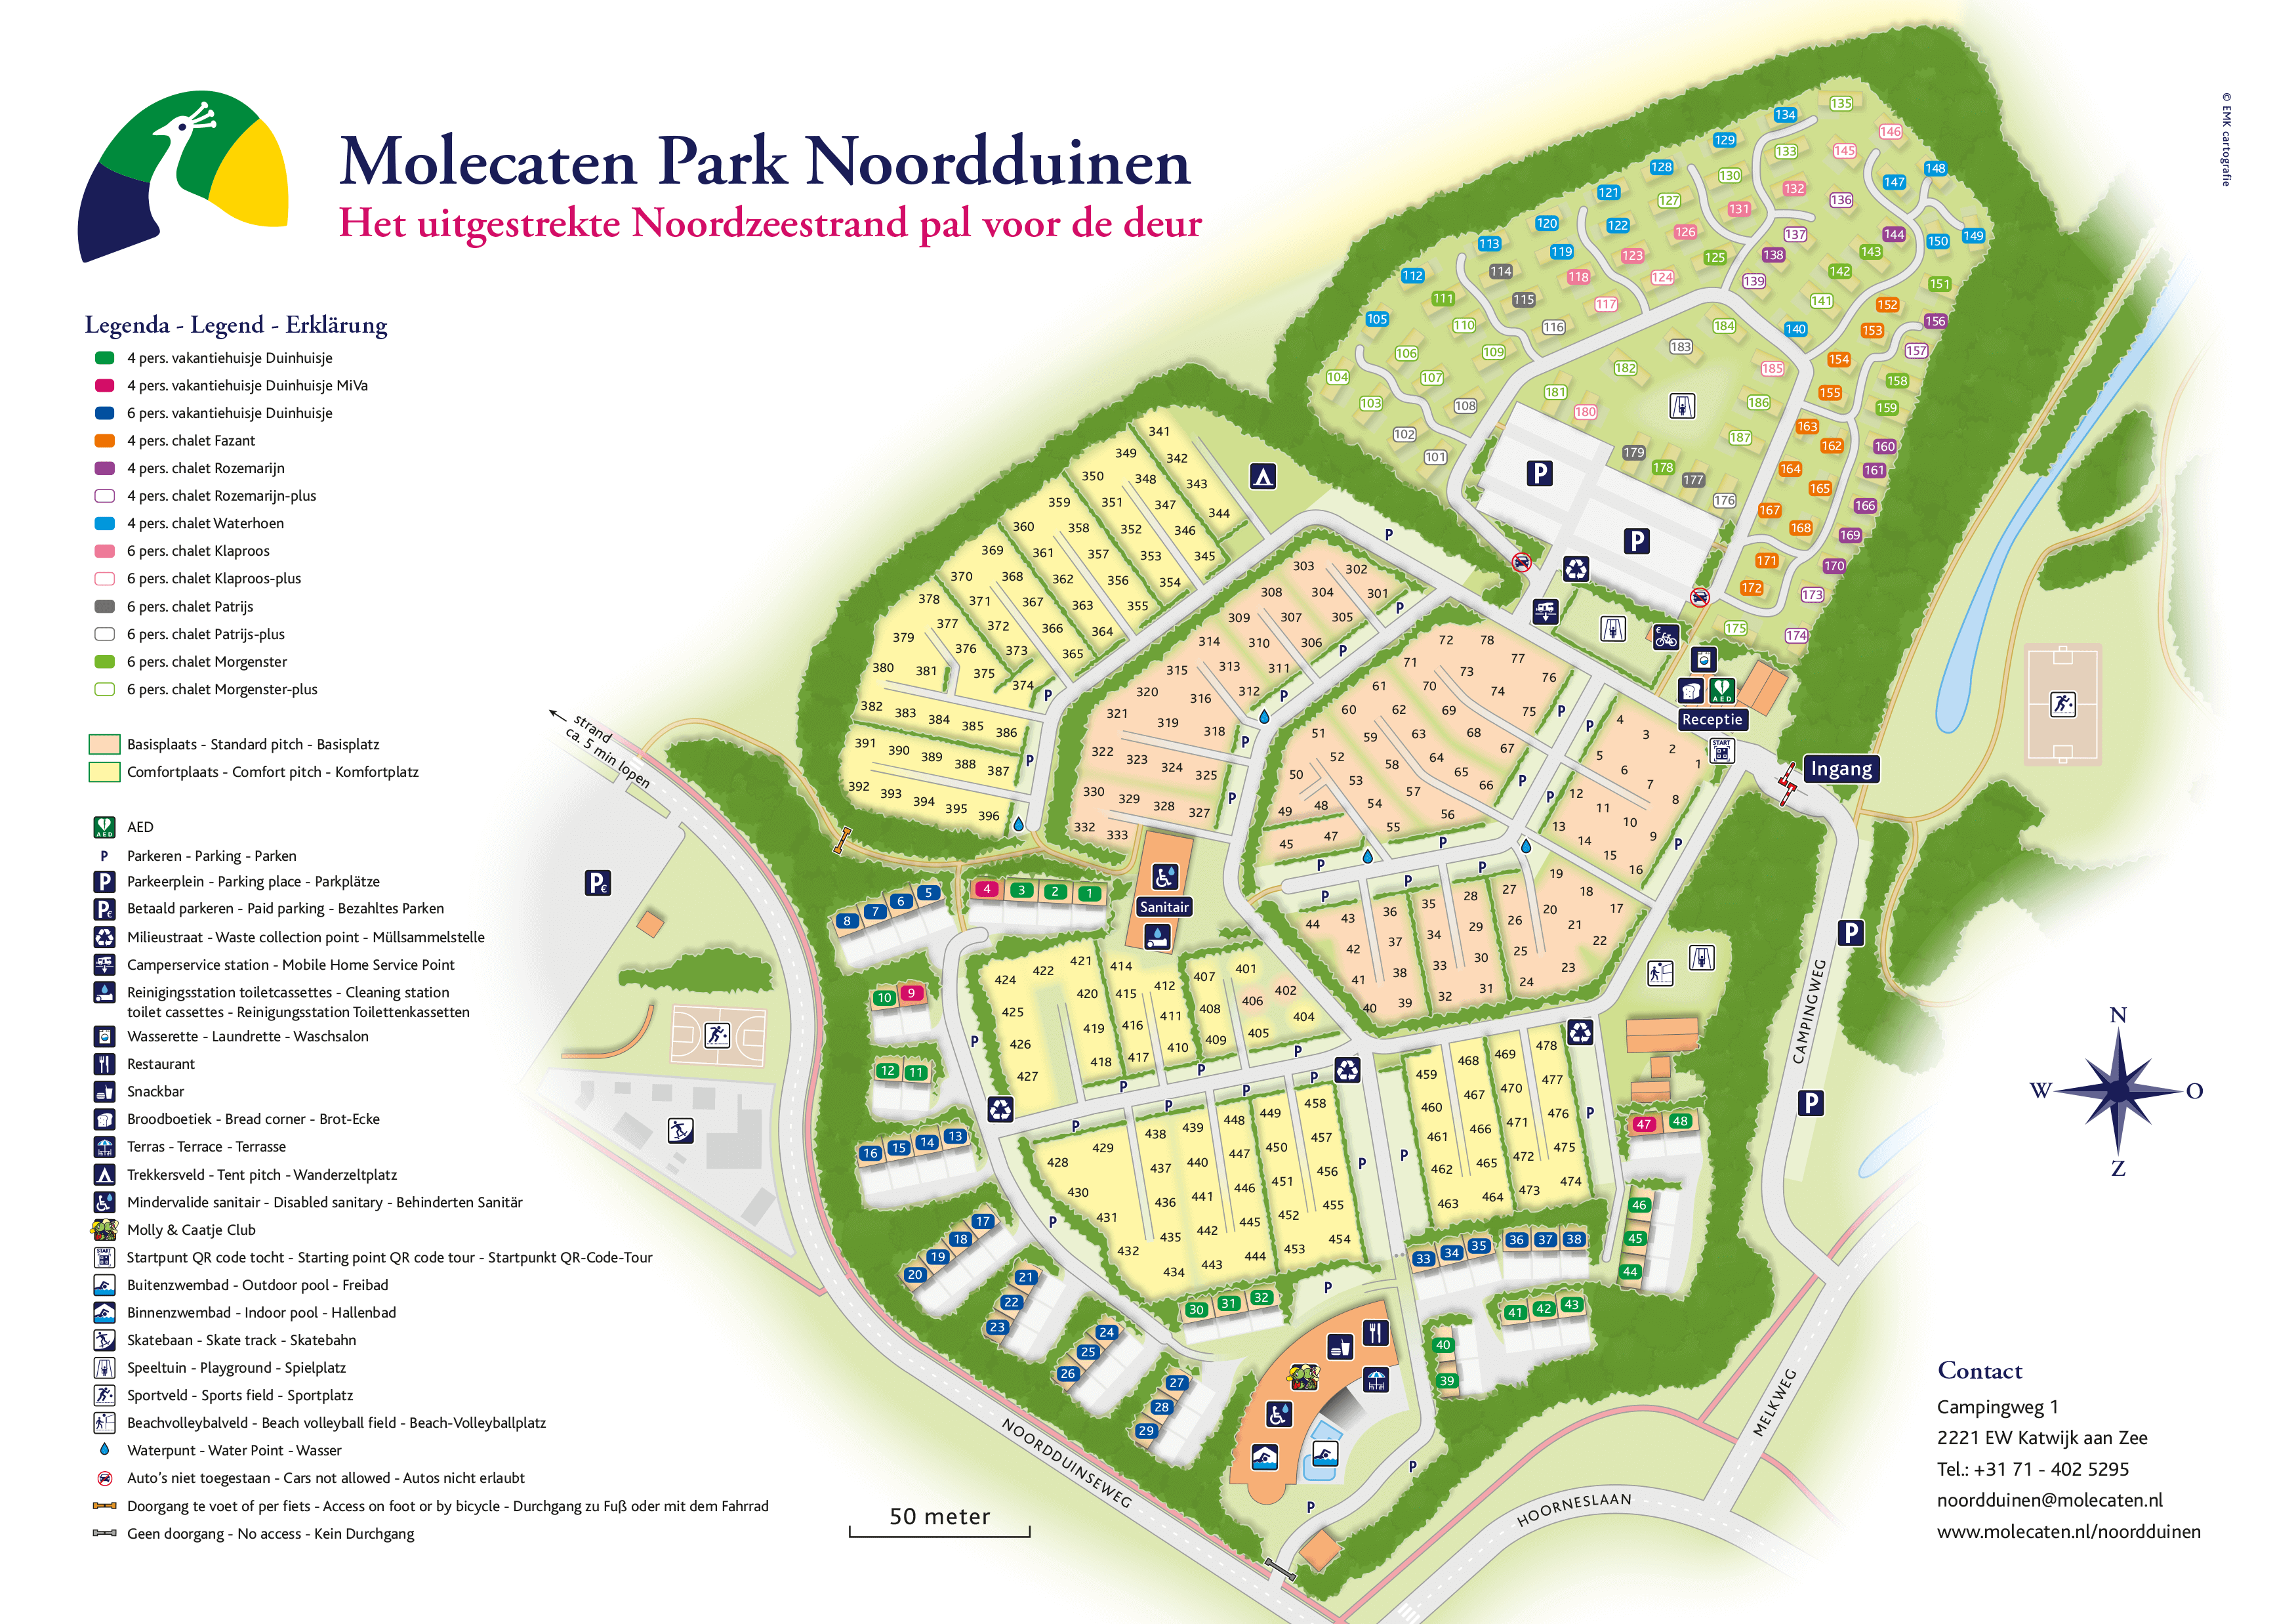 Molecaten Park Noordduinen accommodation.parkmap.alttext